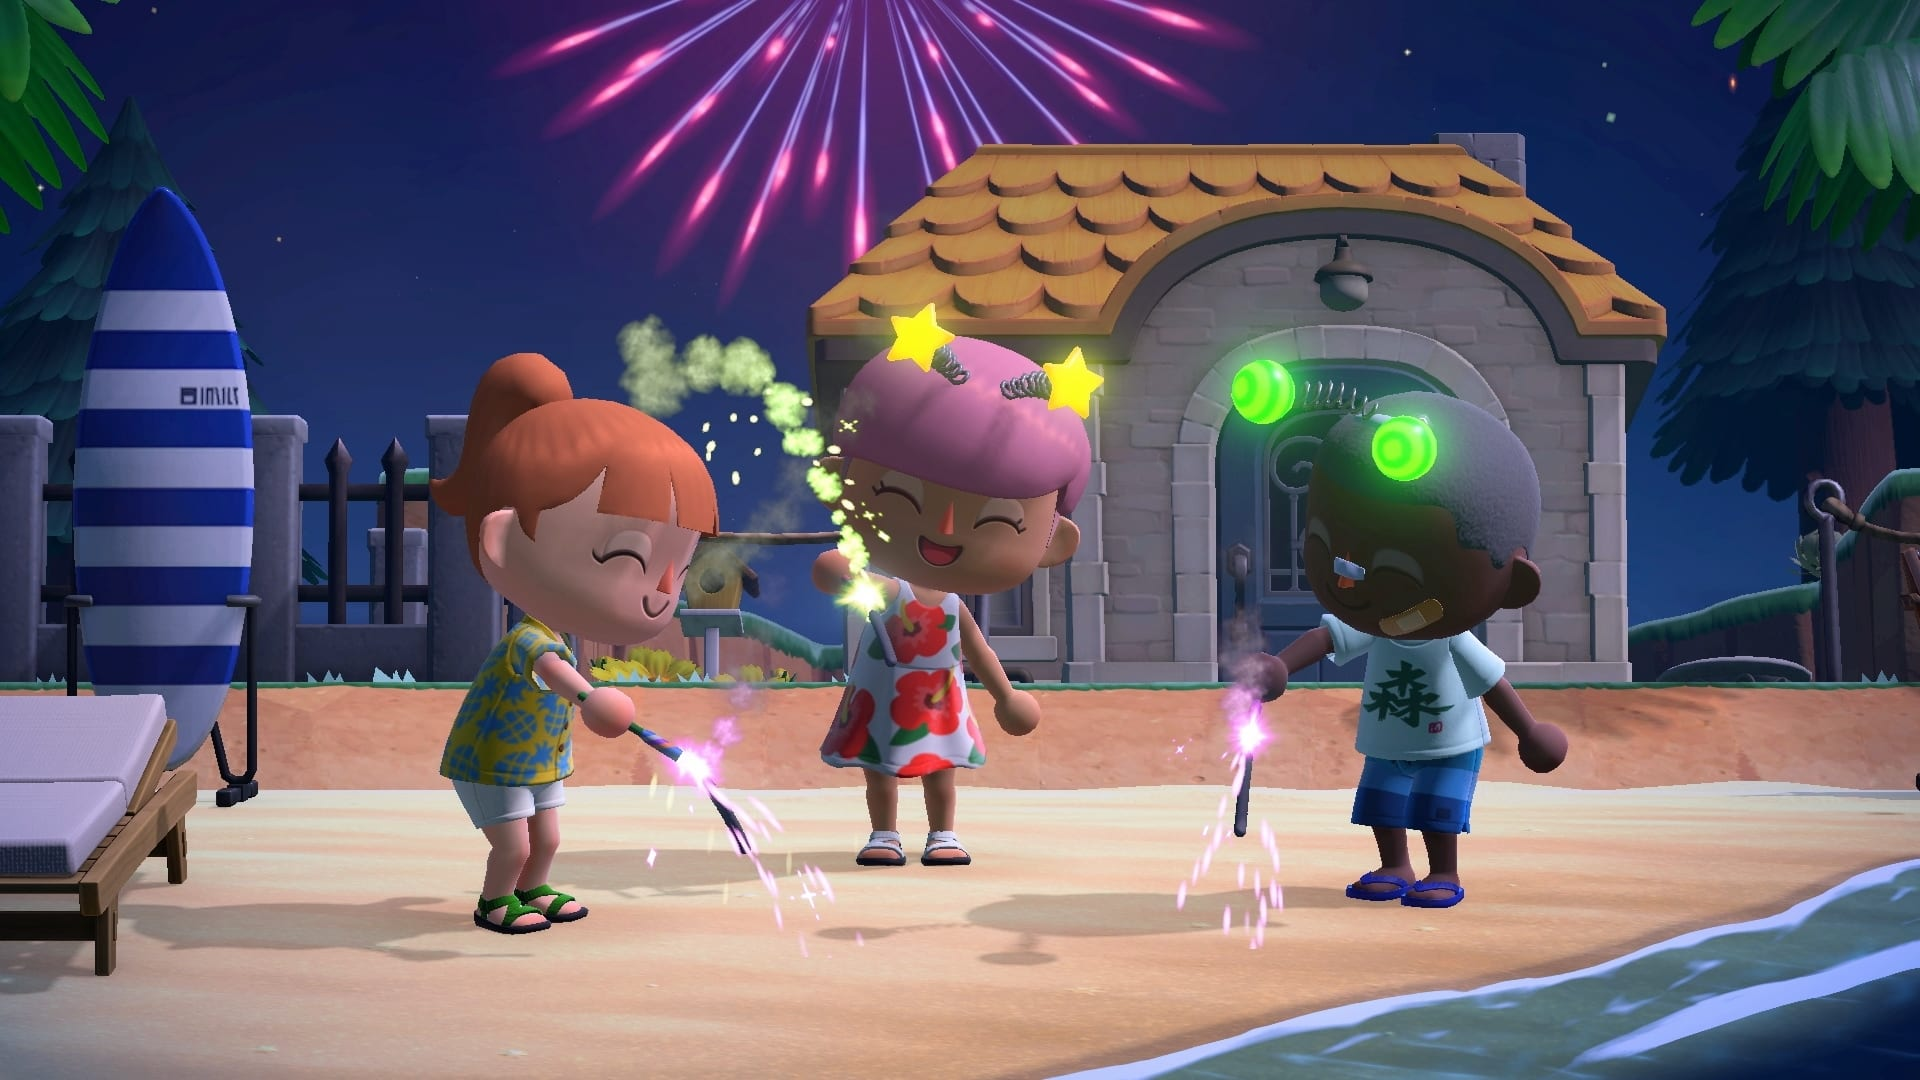 animal crossing new horizons, custom fireworks